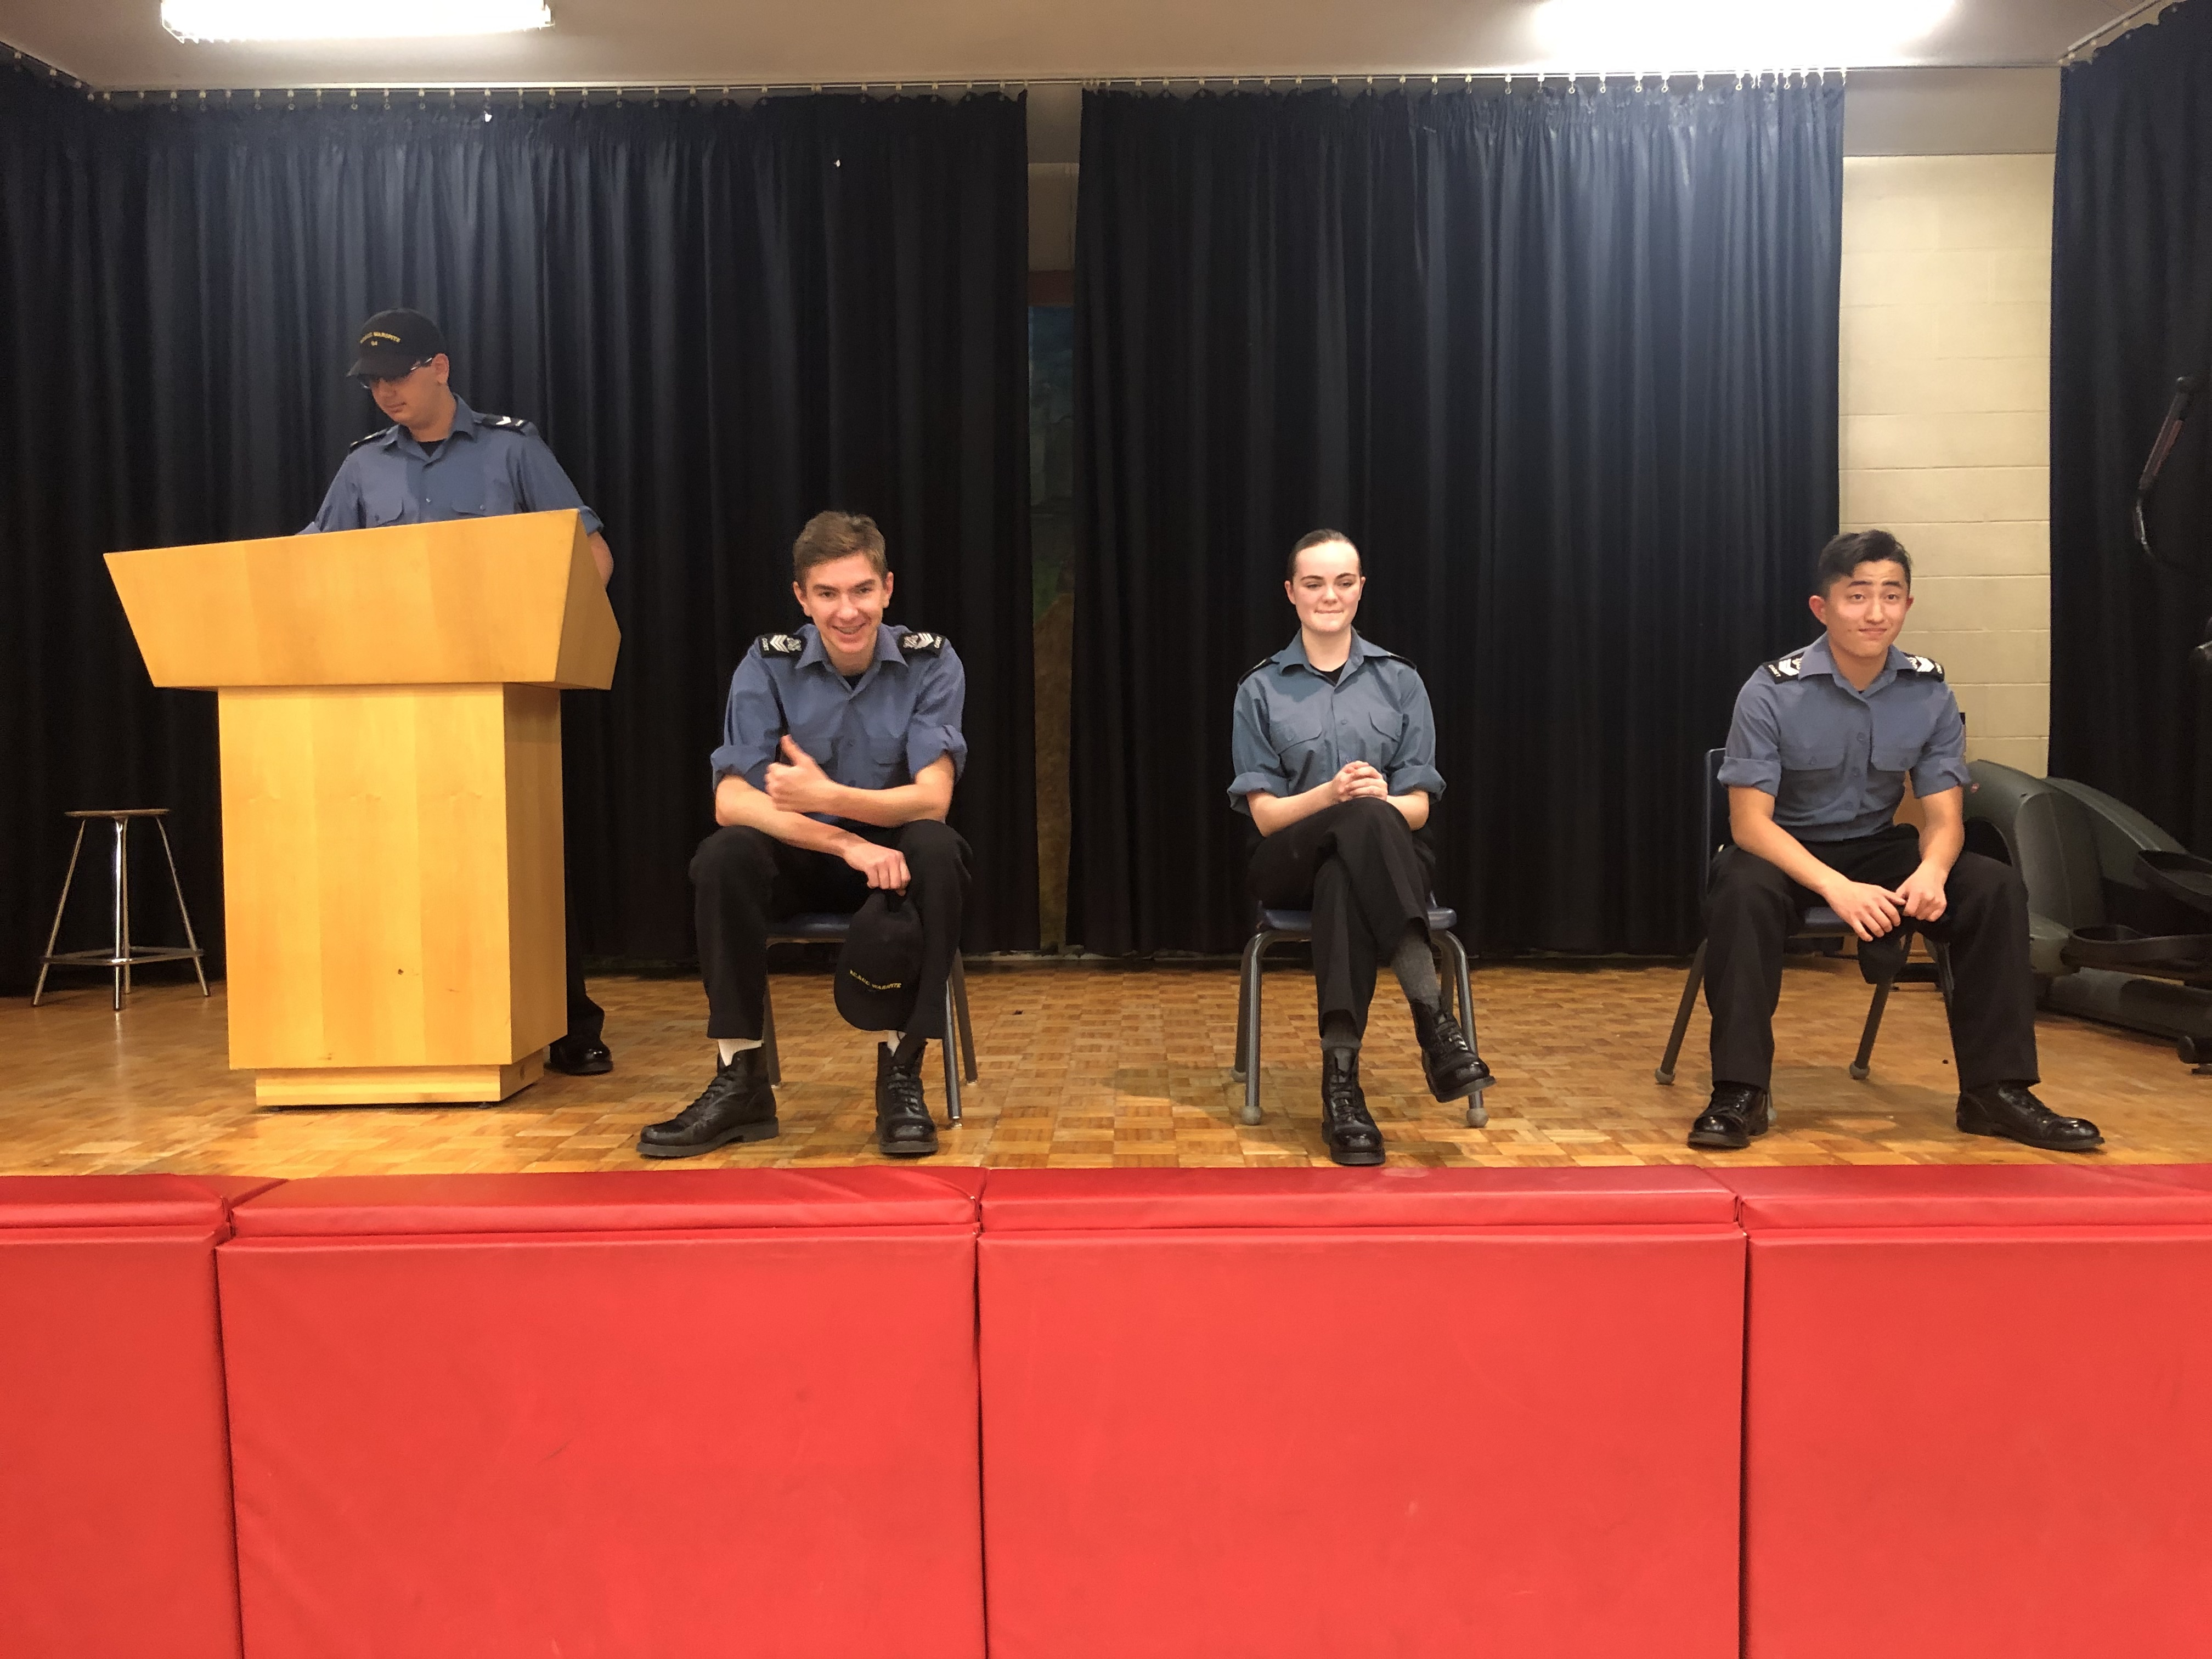 RCSCC Warspite cadets participate in debates over what they would change the sea cadet uniform too